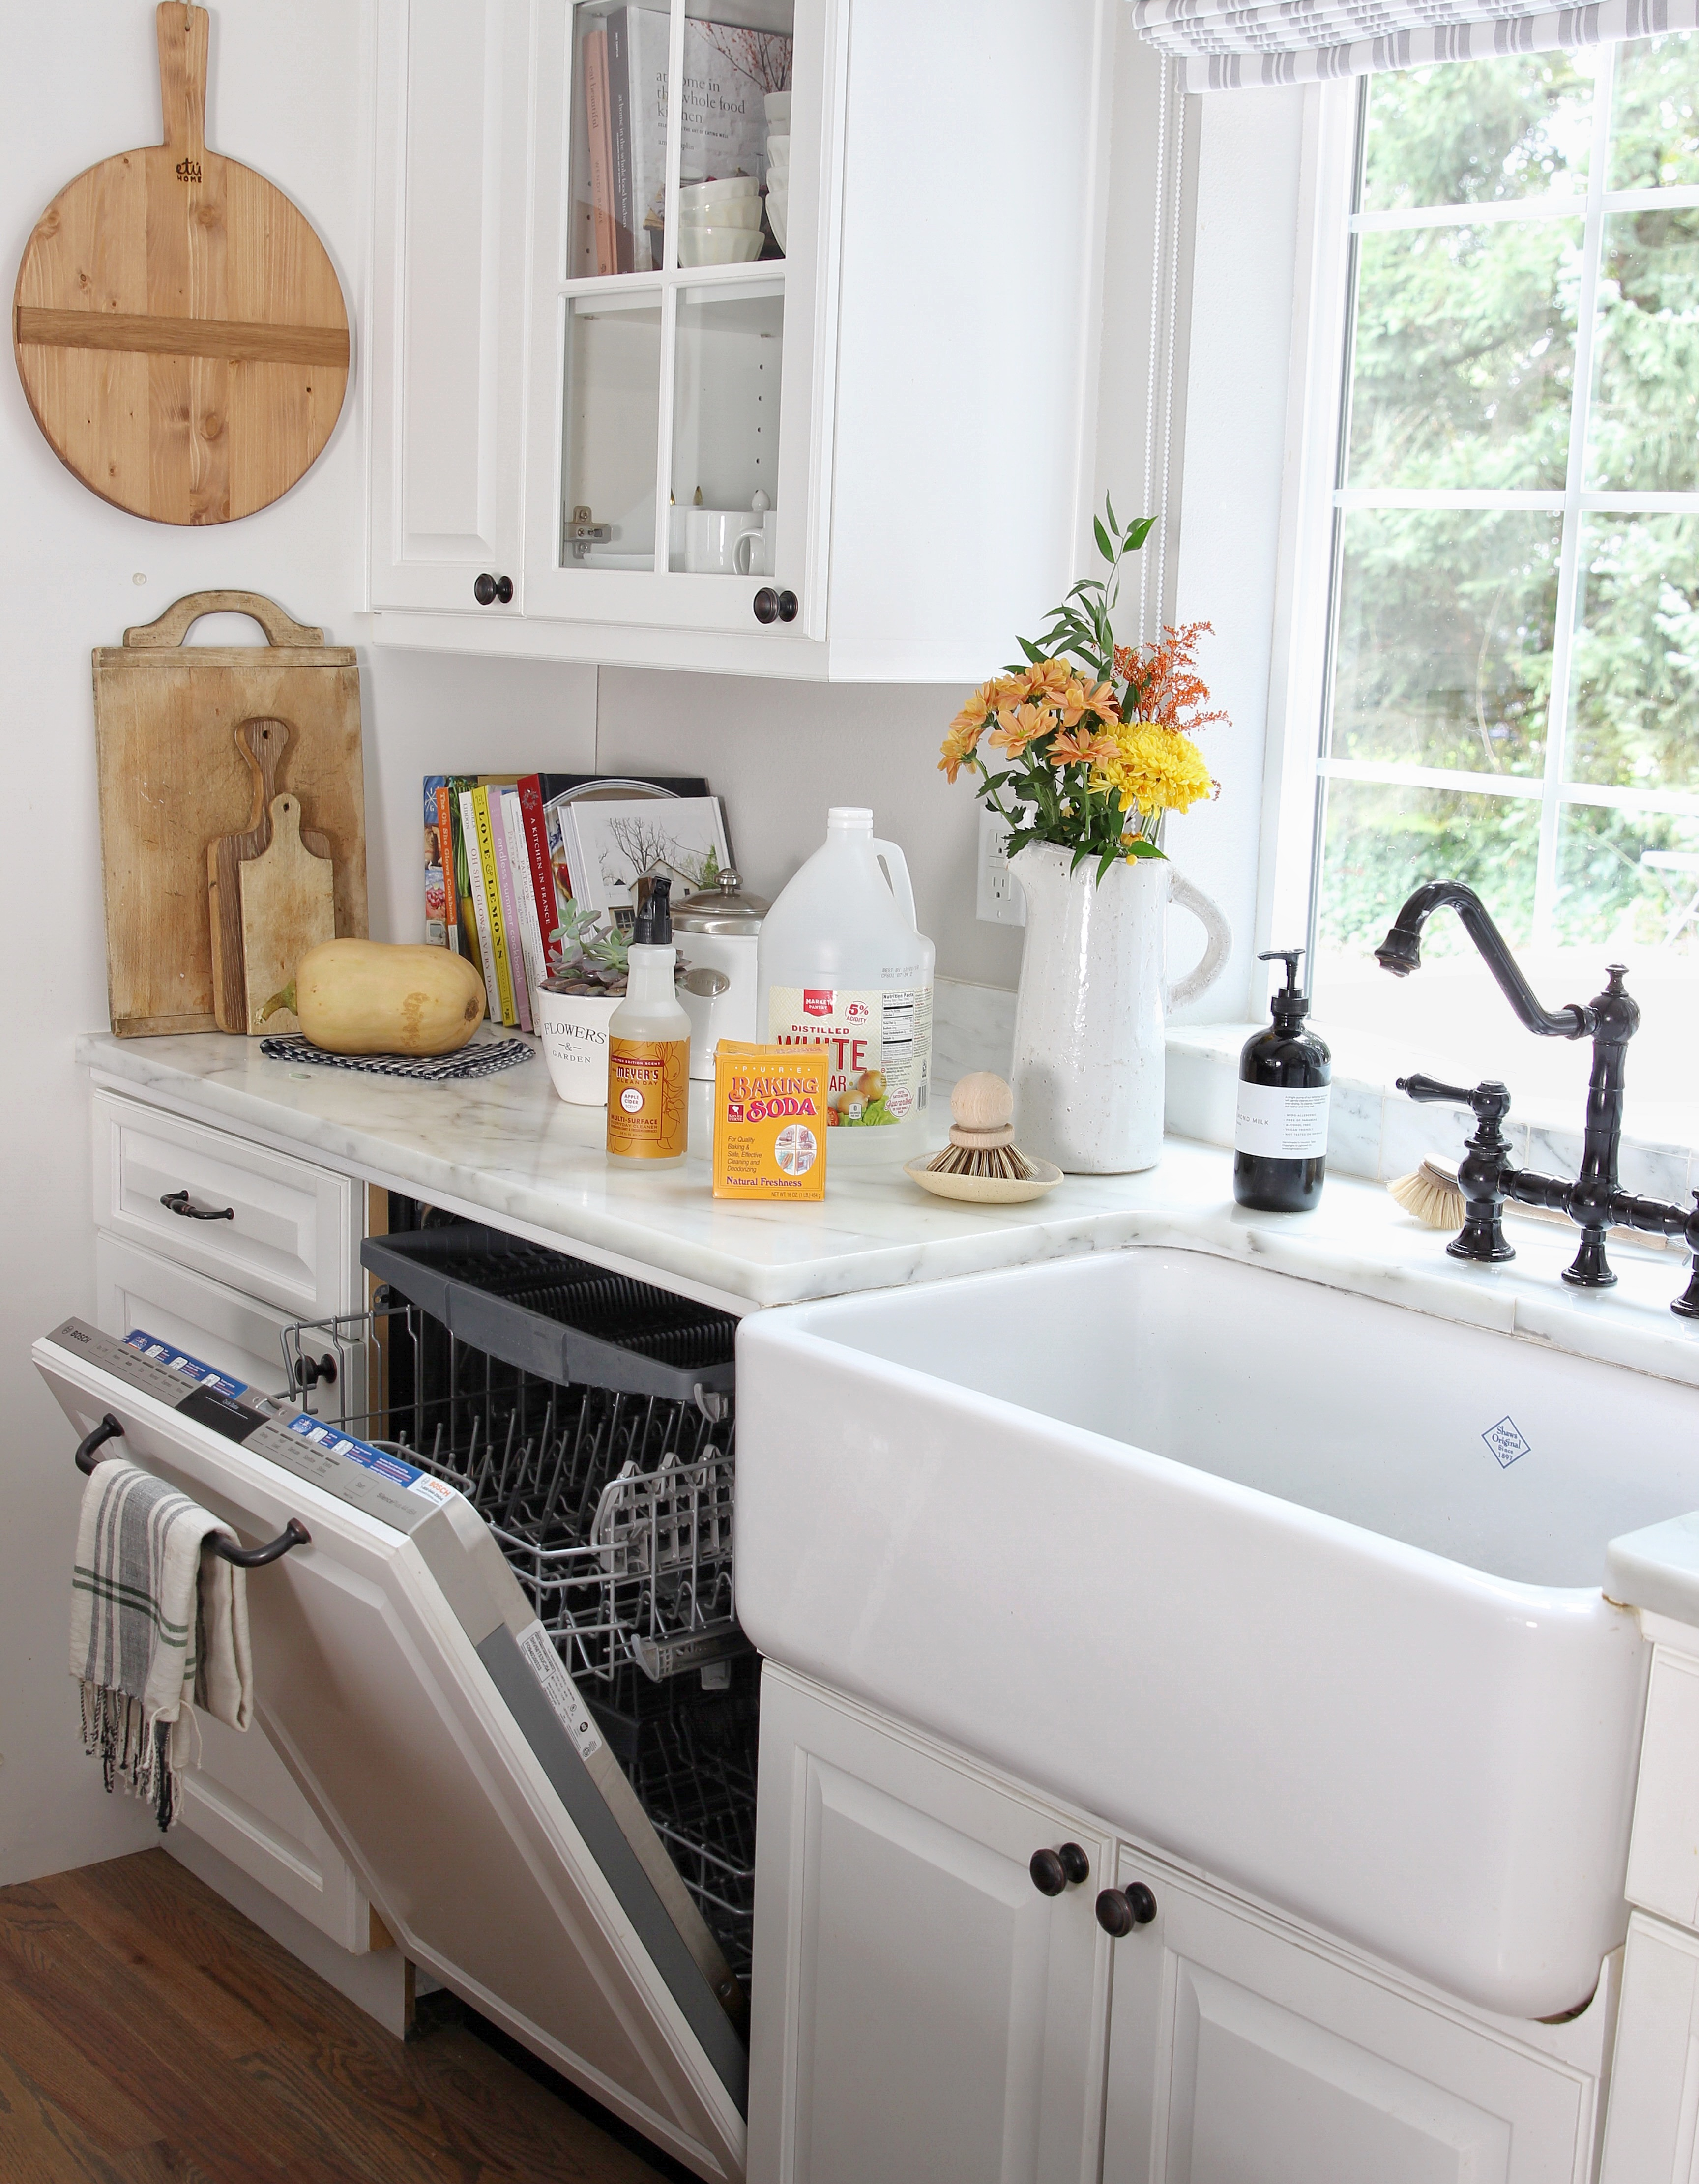 How to clean your dishwasher naturally - Lemon Grove Lane